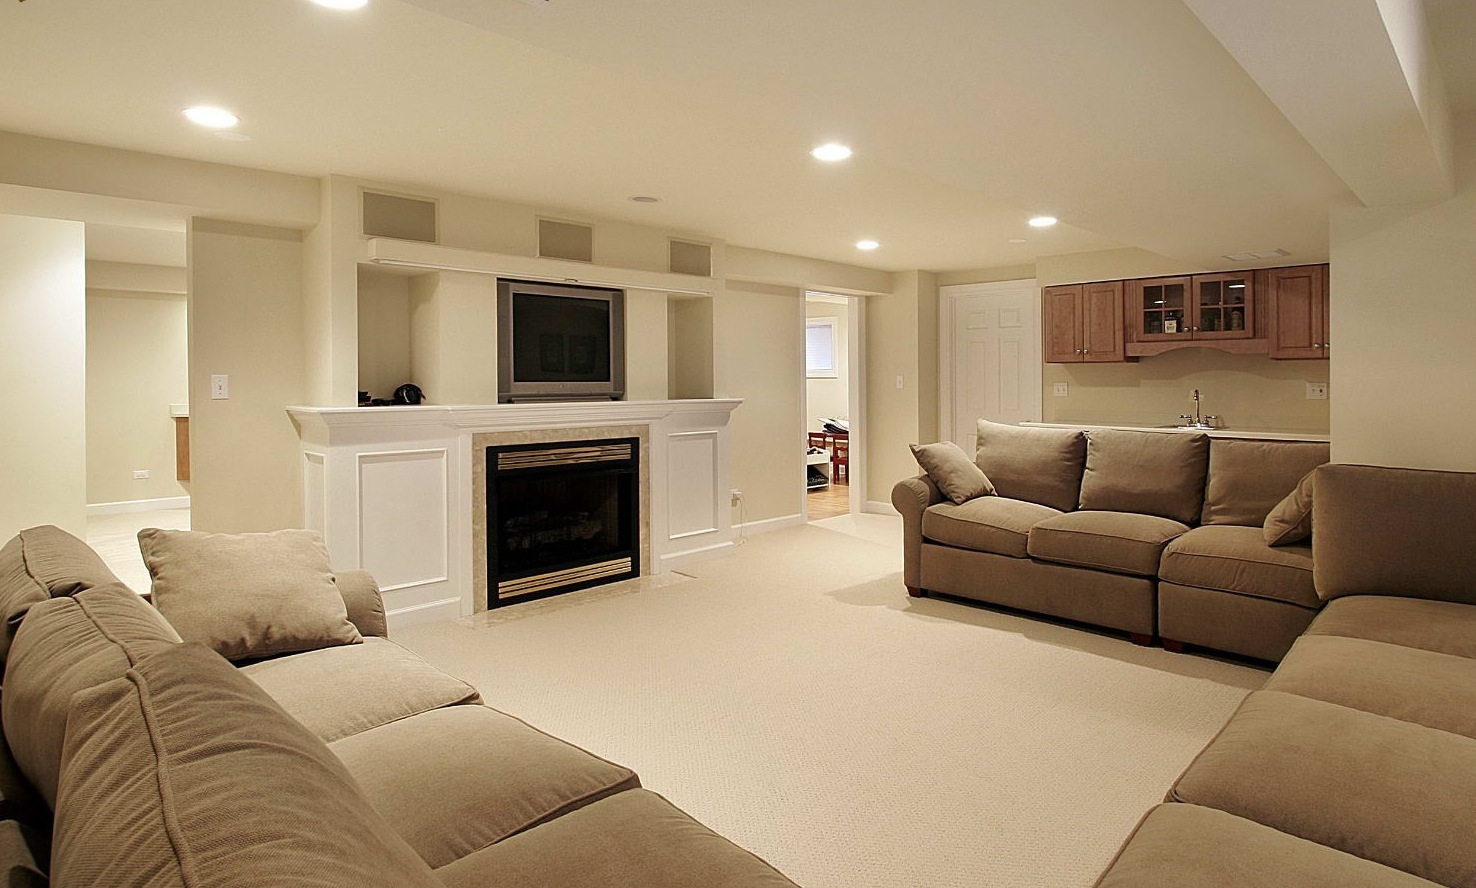 Remodeling Living Room Ideas 30 Basement Remodeling Ideas & Inspiration